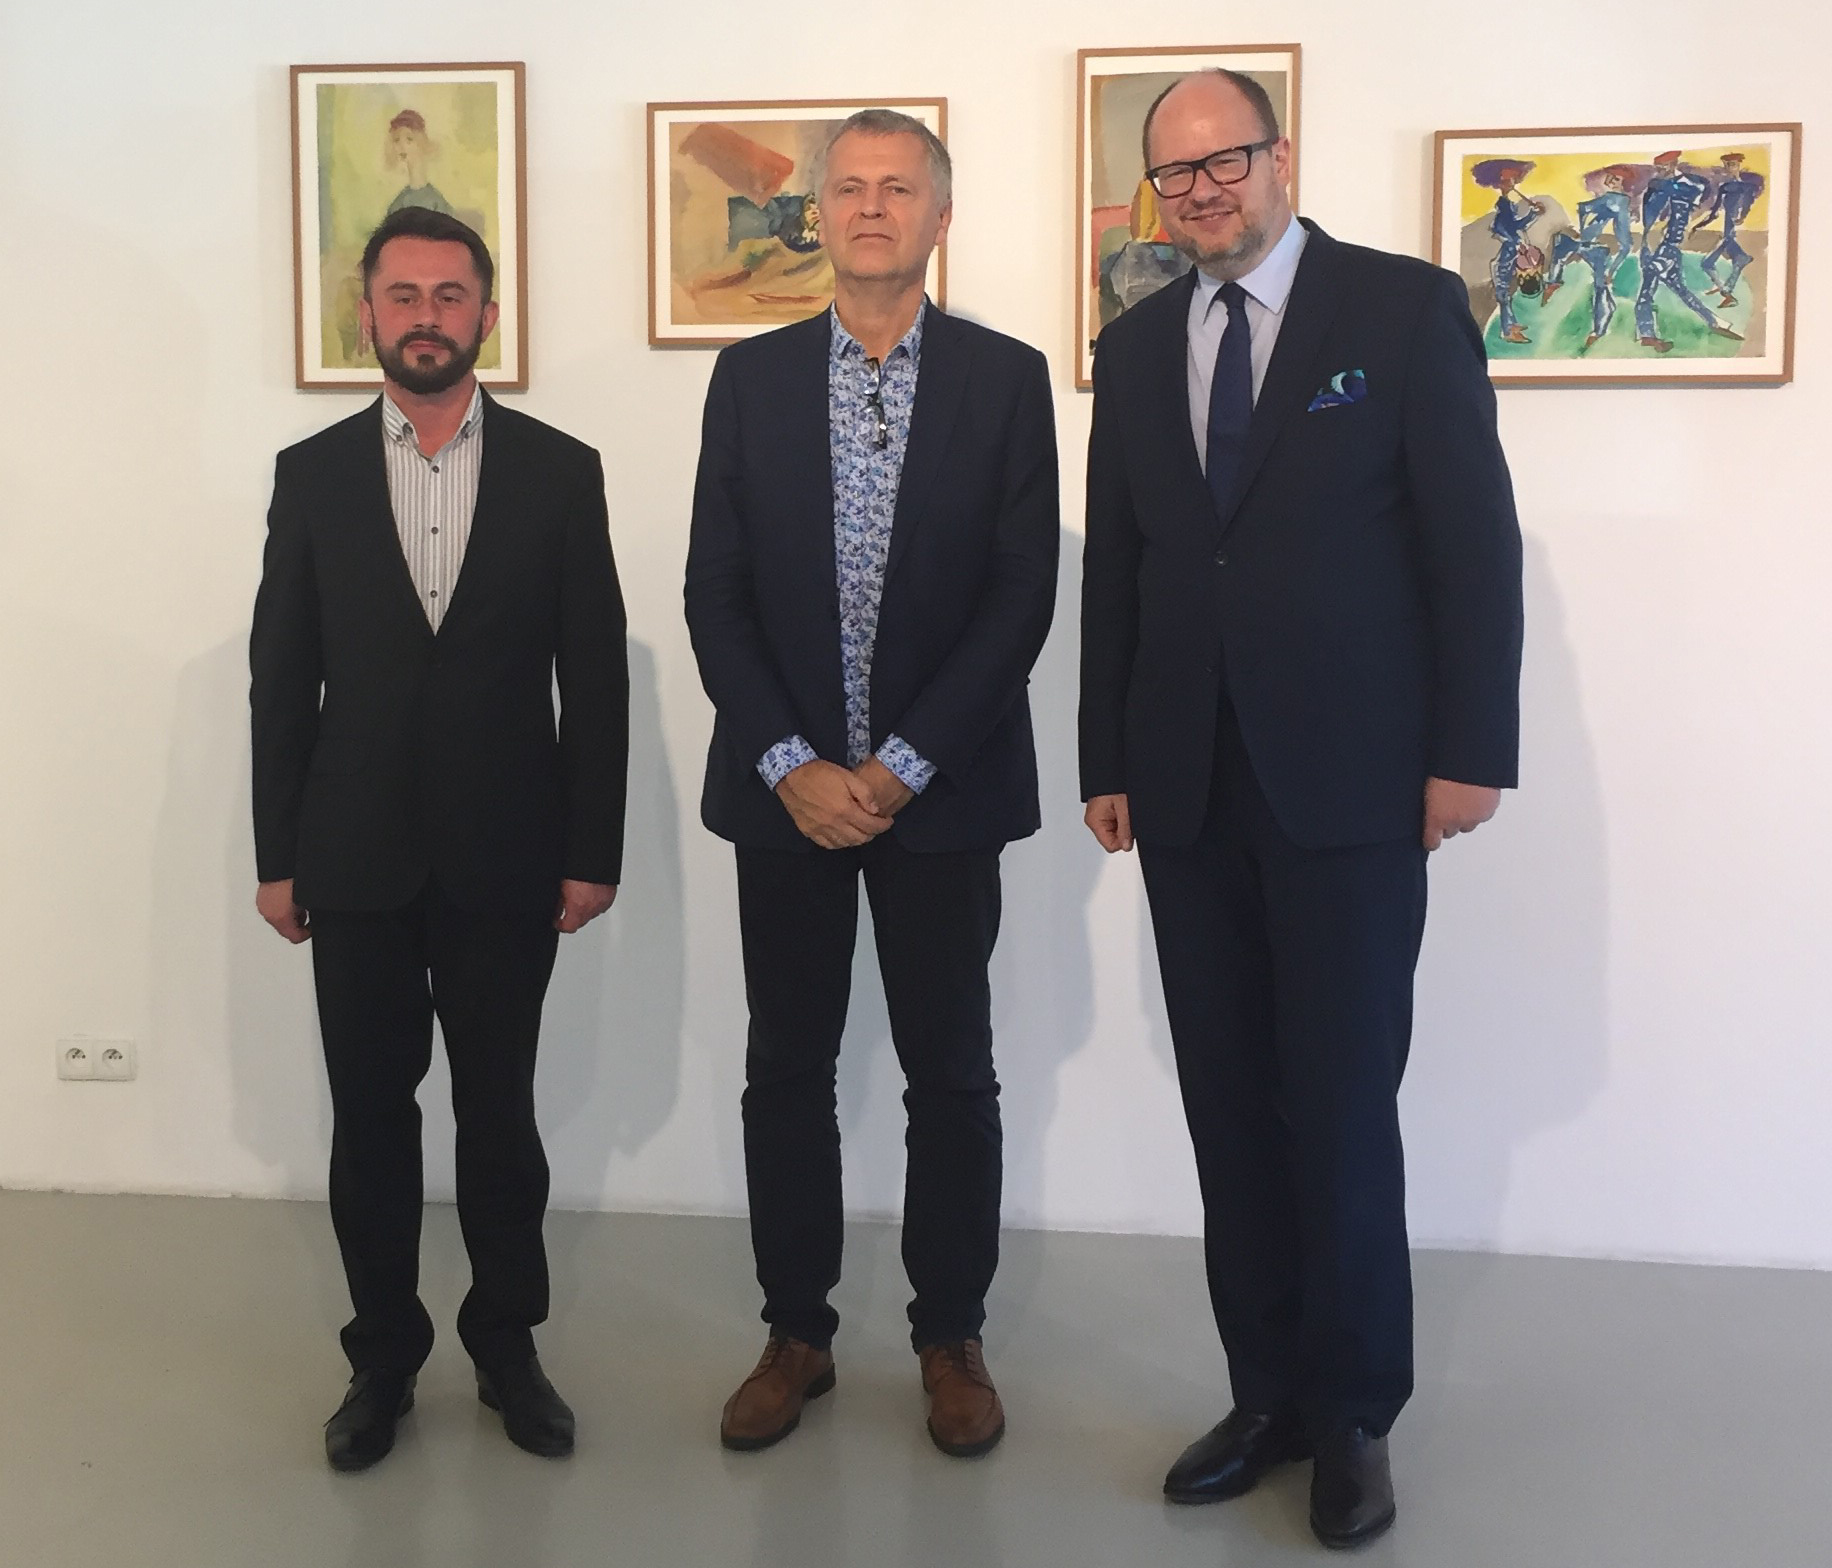 From left: Director of the Gdańsk City Gallery, Piotr Stasiowski, ICORN Director Helge Lunde and Mayor of the City of Gdańsk, Paweł Adamowicz at the Gunter Grass Gallery at Gdansk City Gallery. Photo.